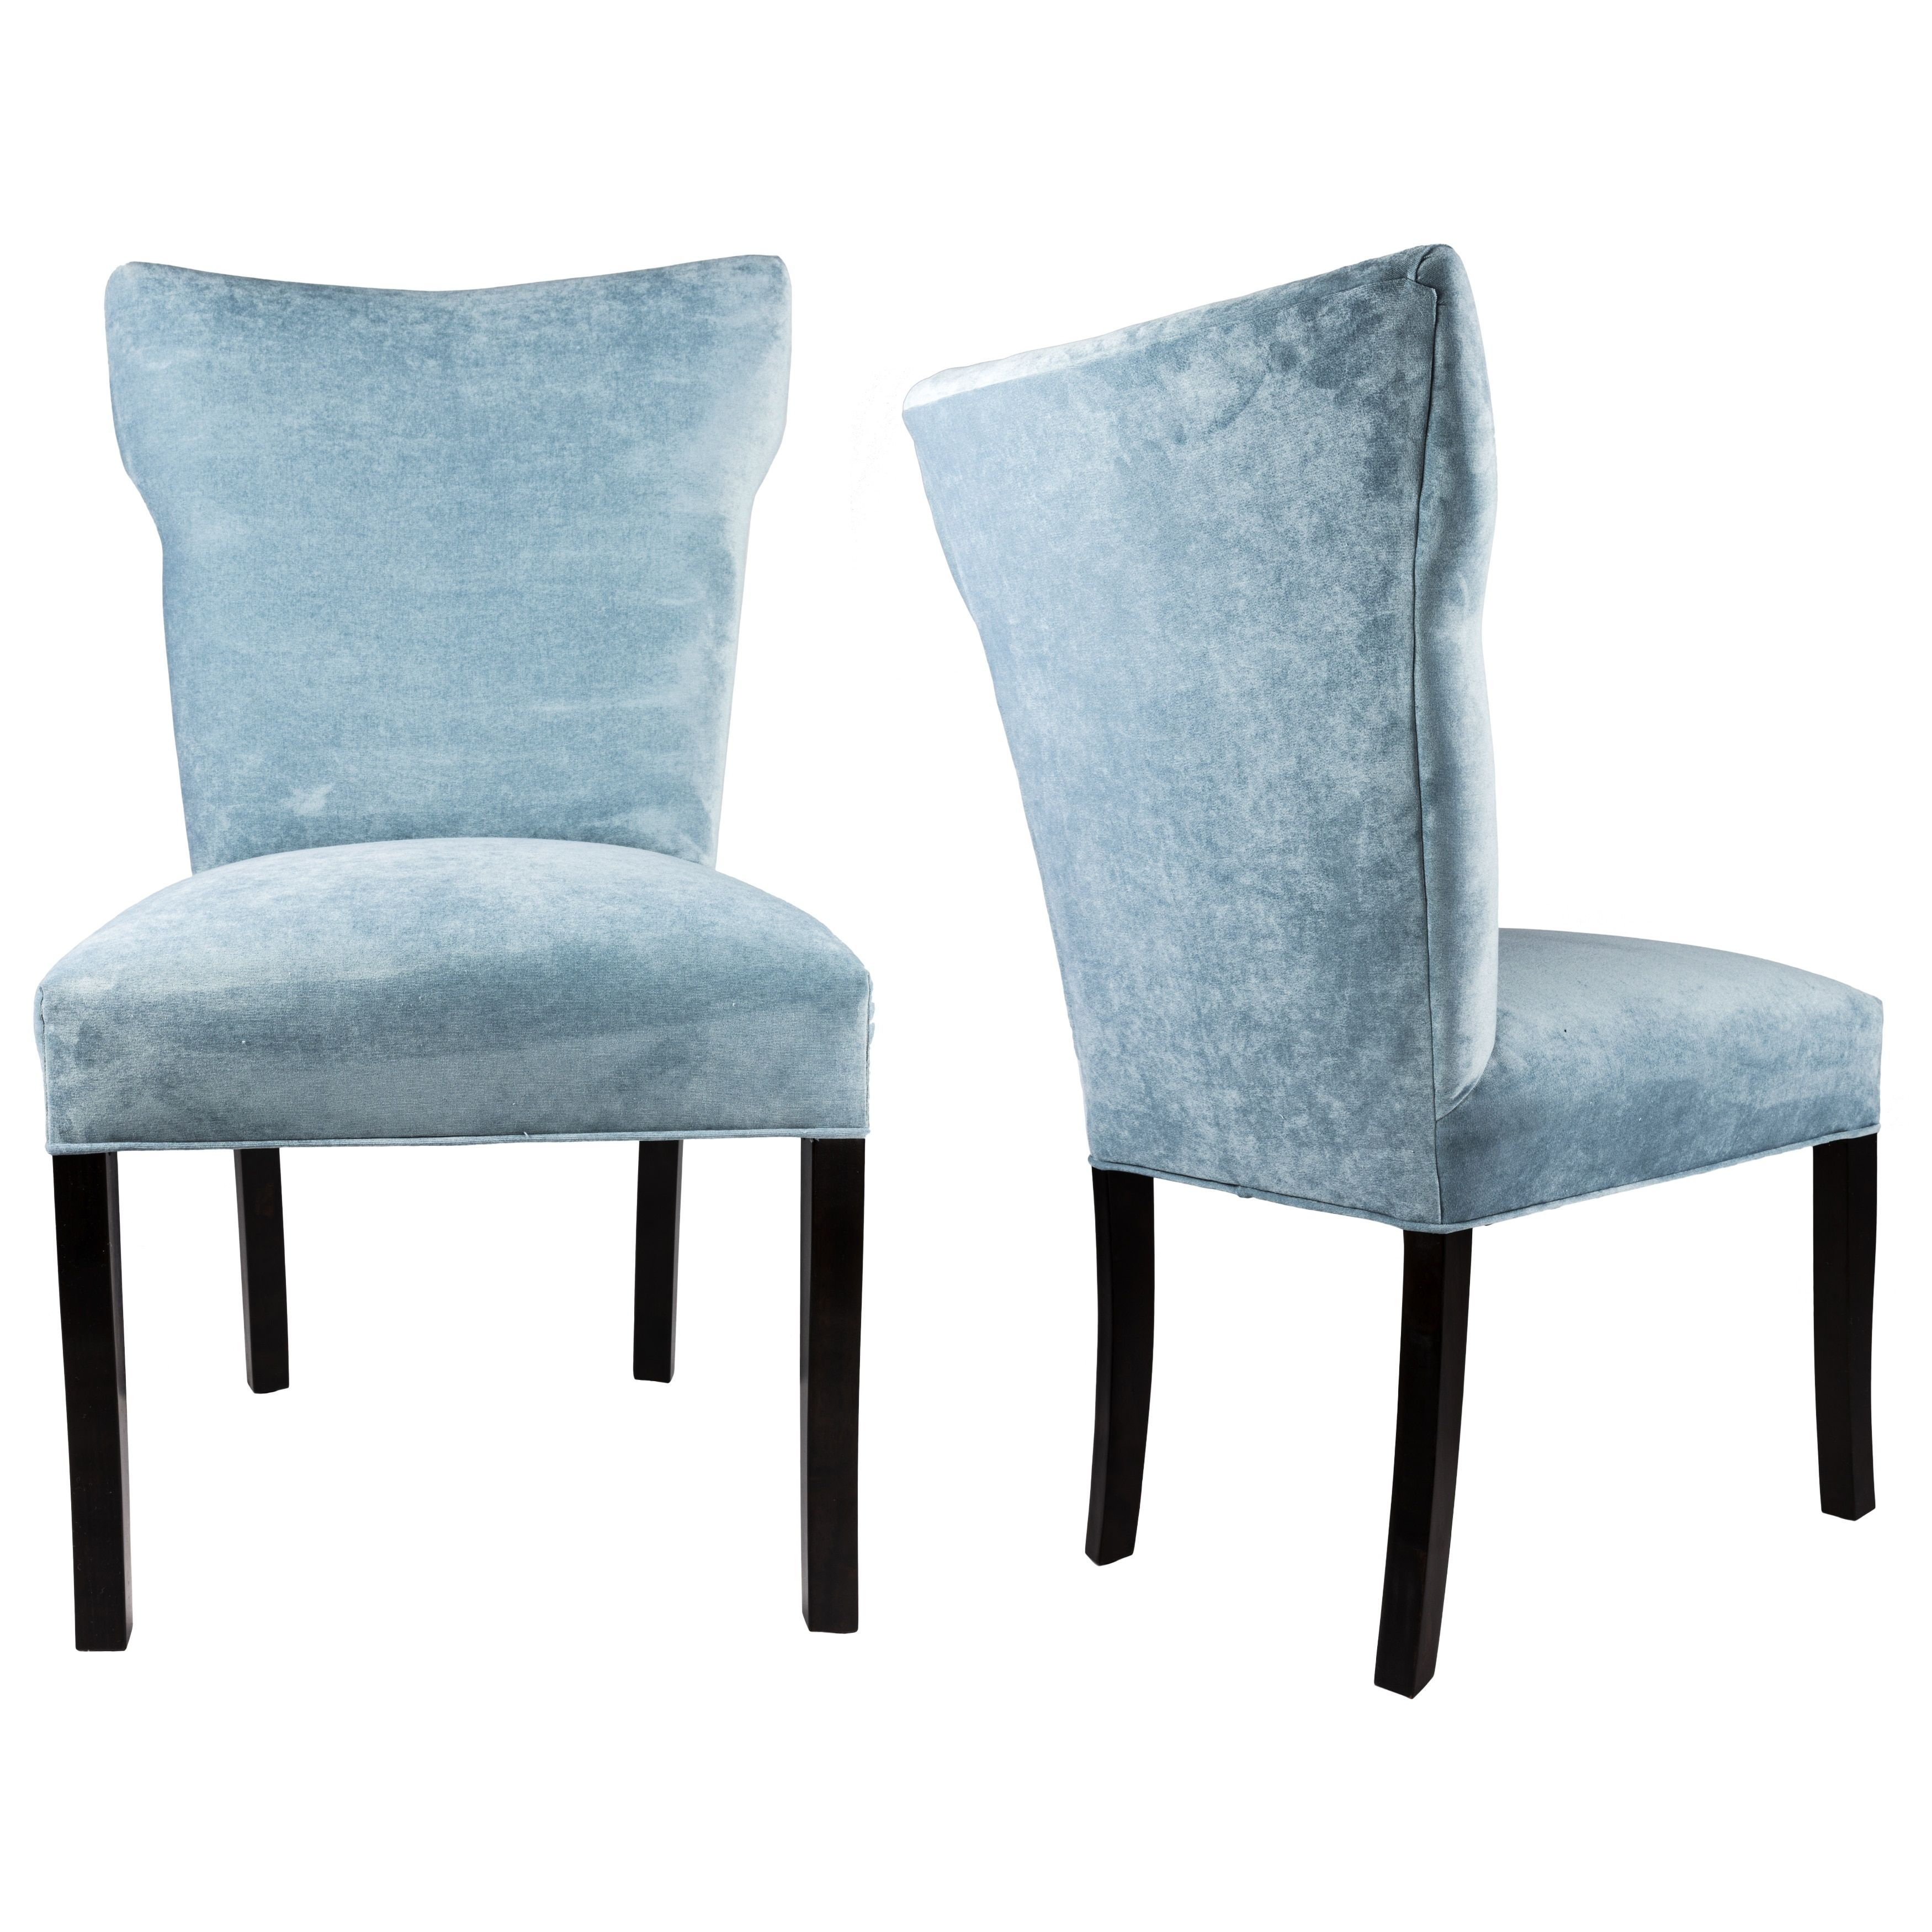 Sole Designs Bella Collection Sonoma Upholstered Contemporary Armless Dining Side Chairs, Espresso legs